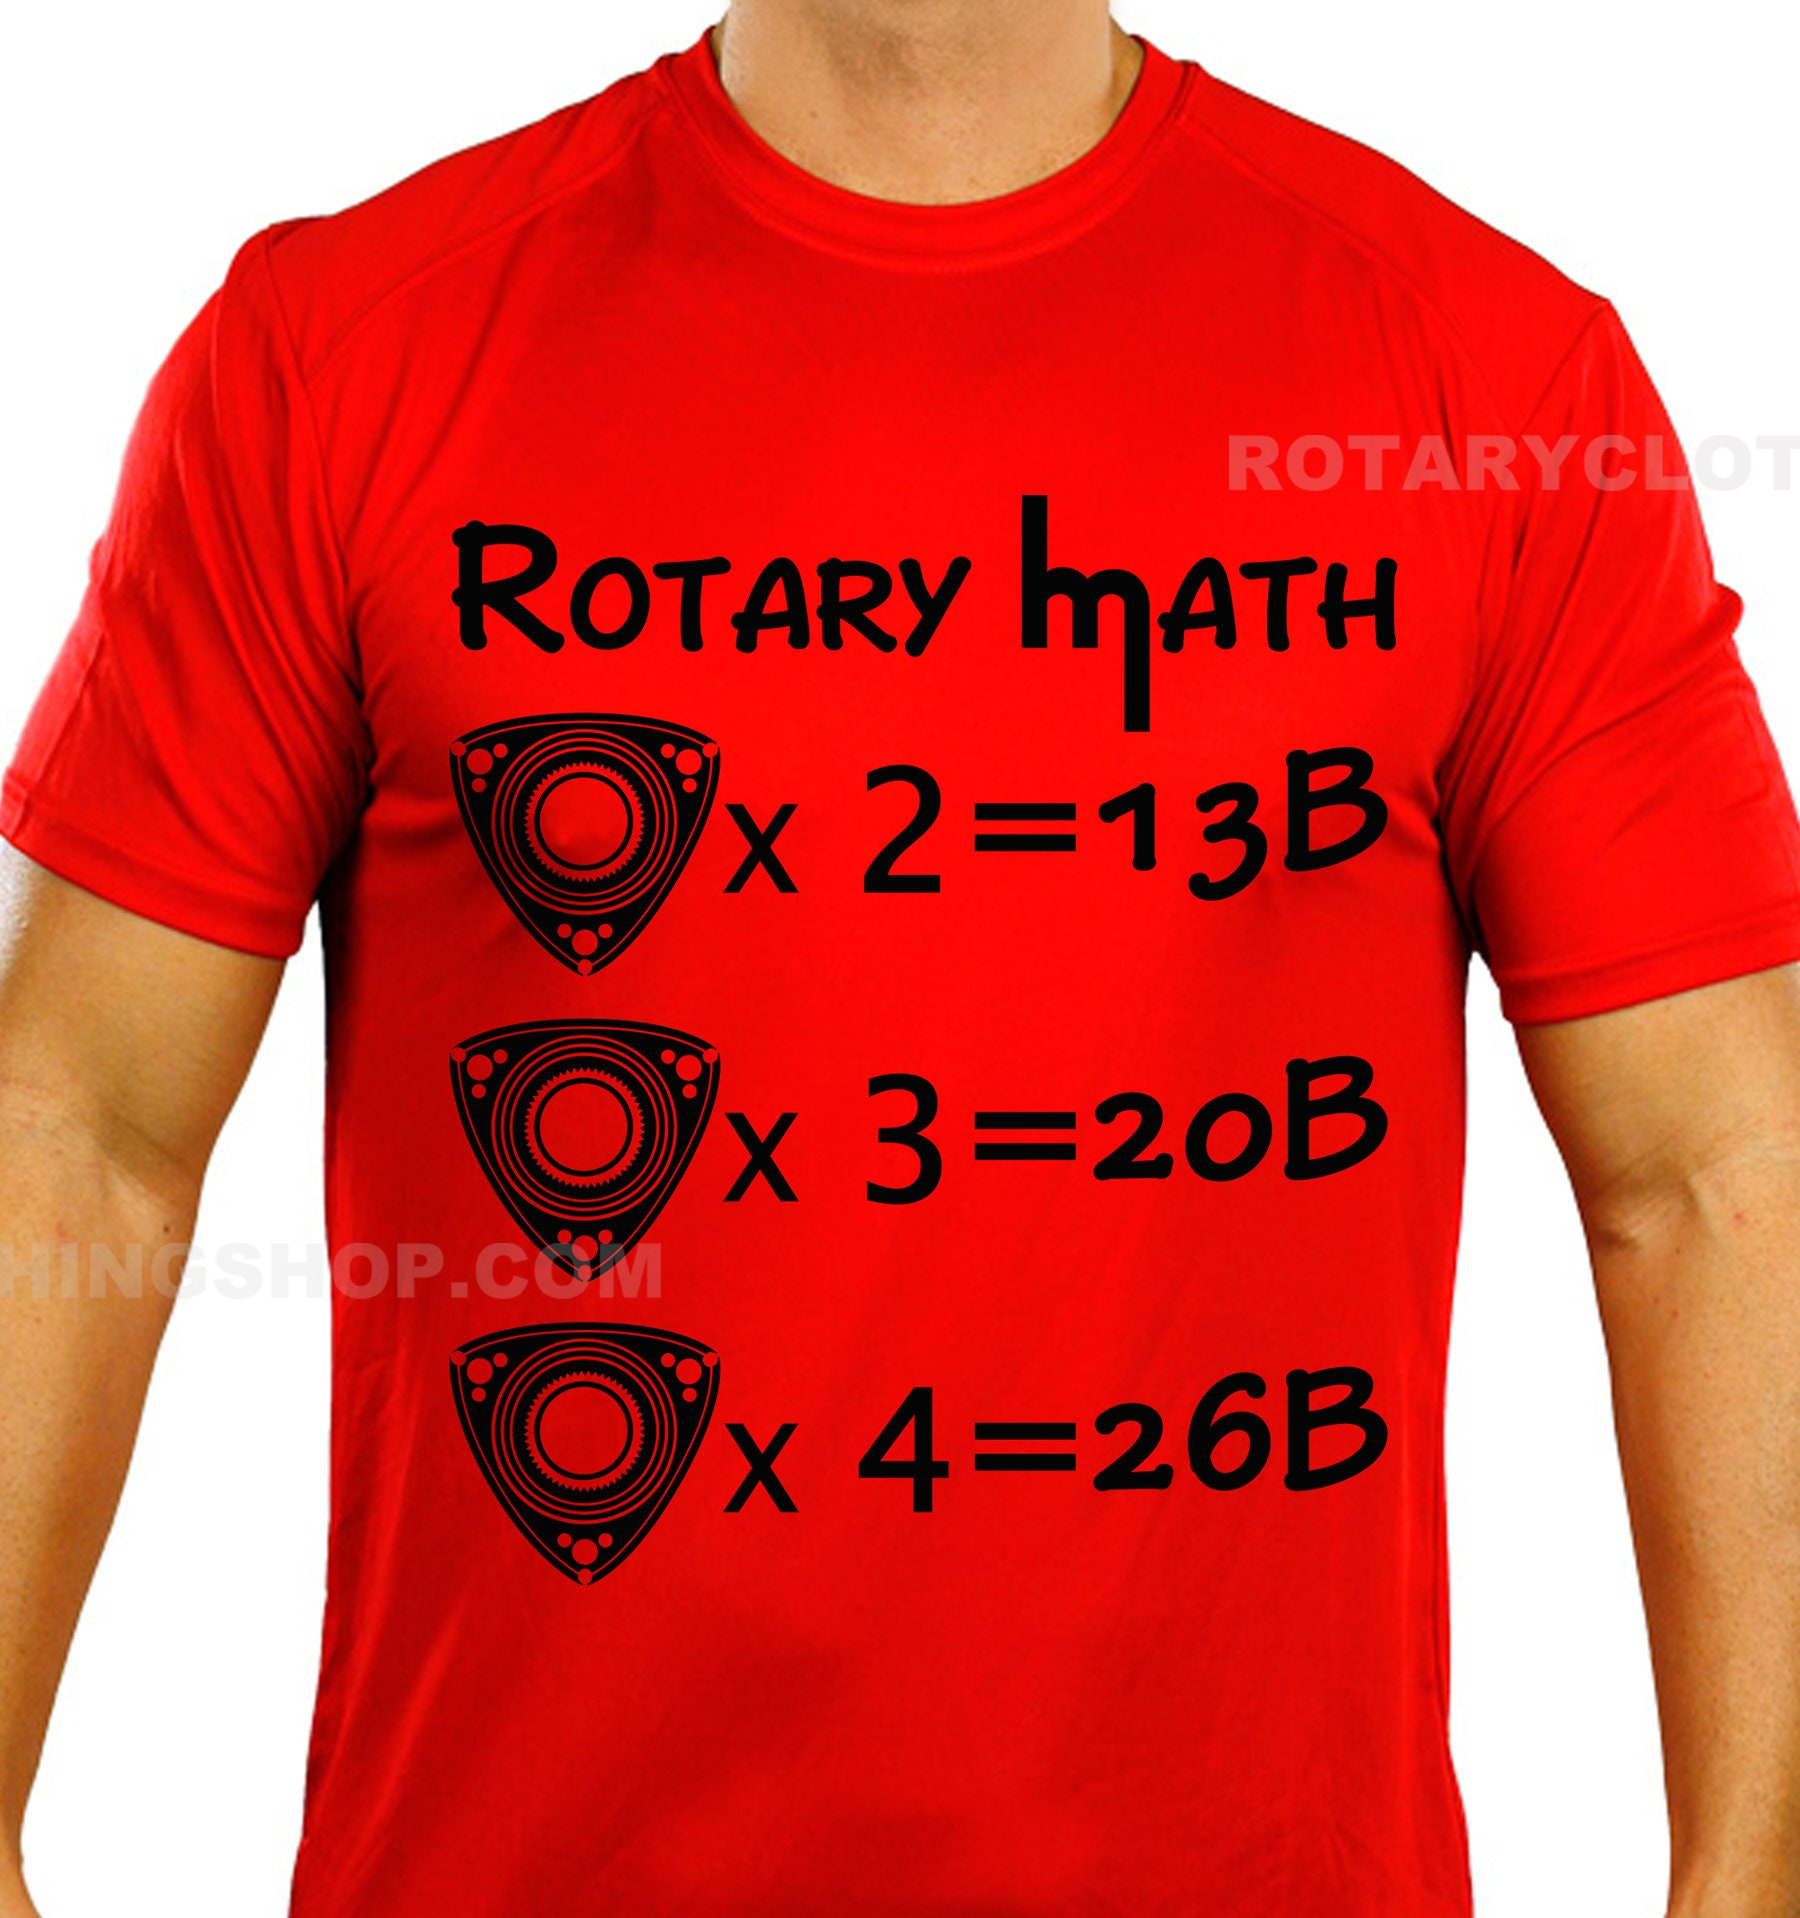 Rotary Math - mazda rotary - graphic T-shirt - Men apparel